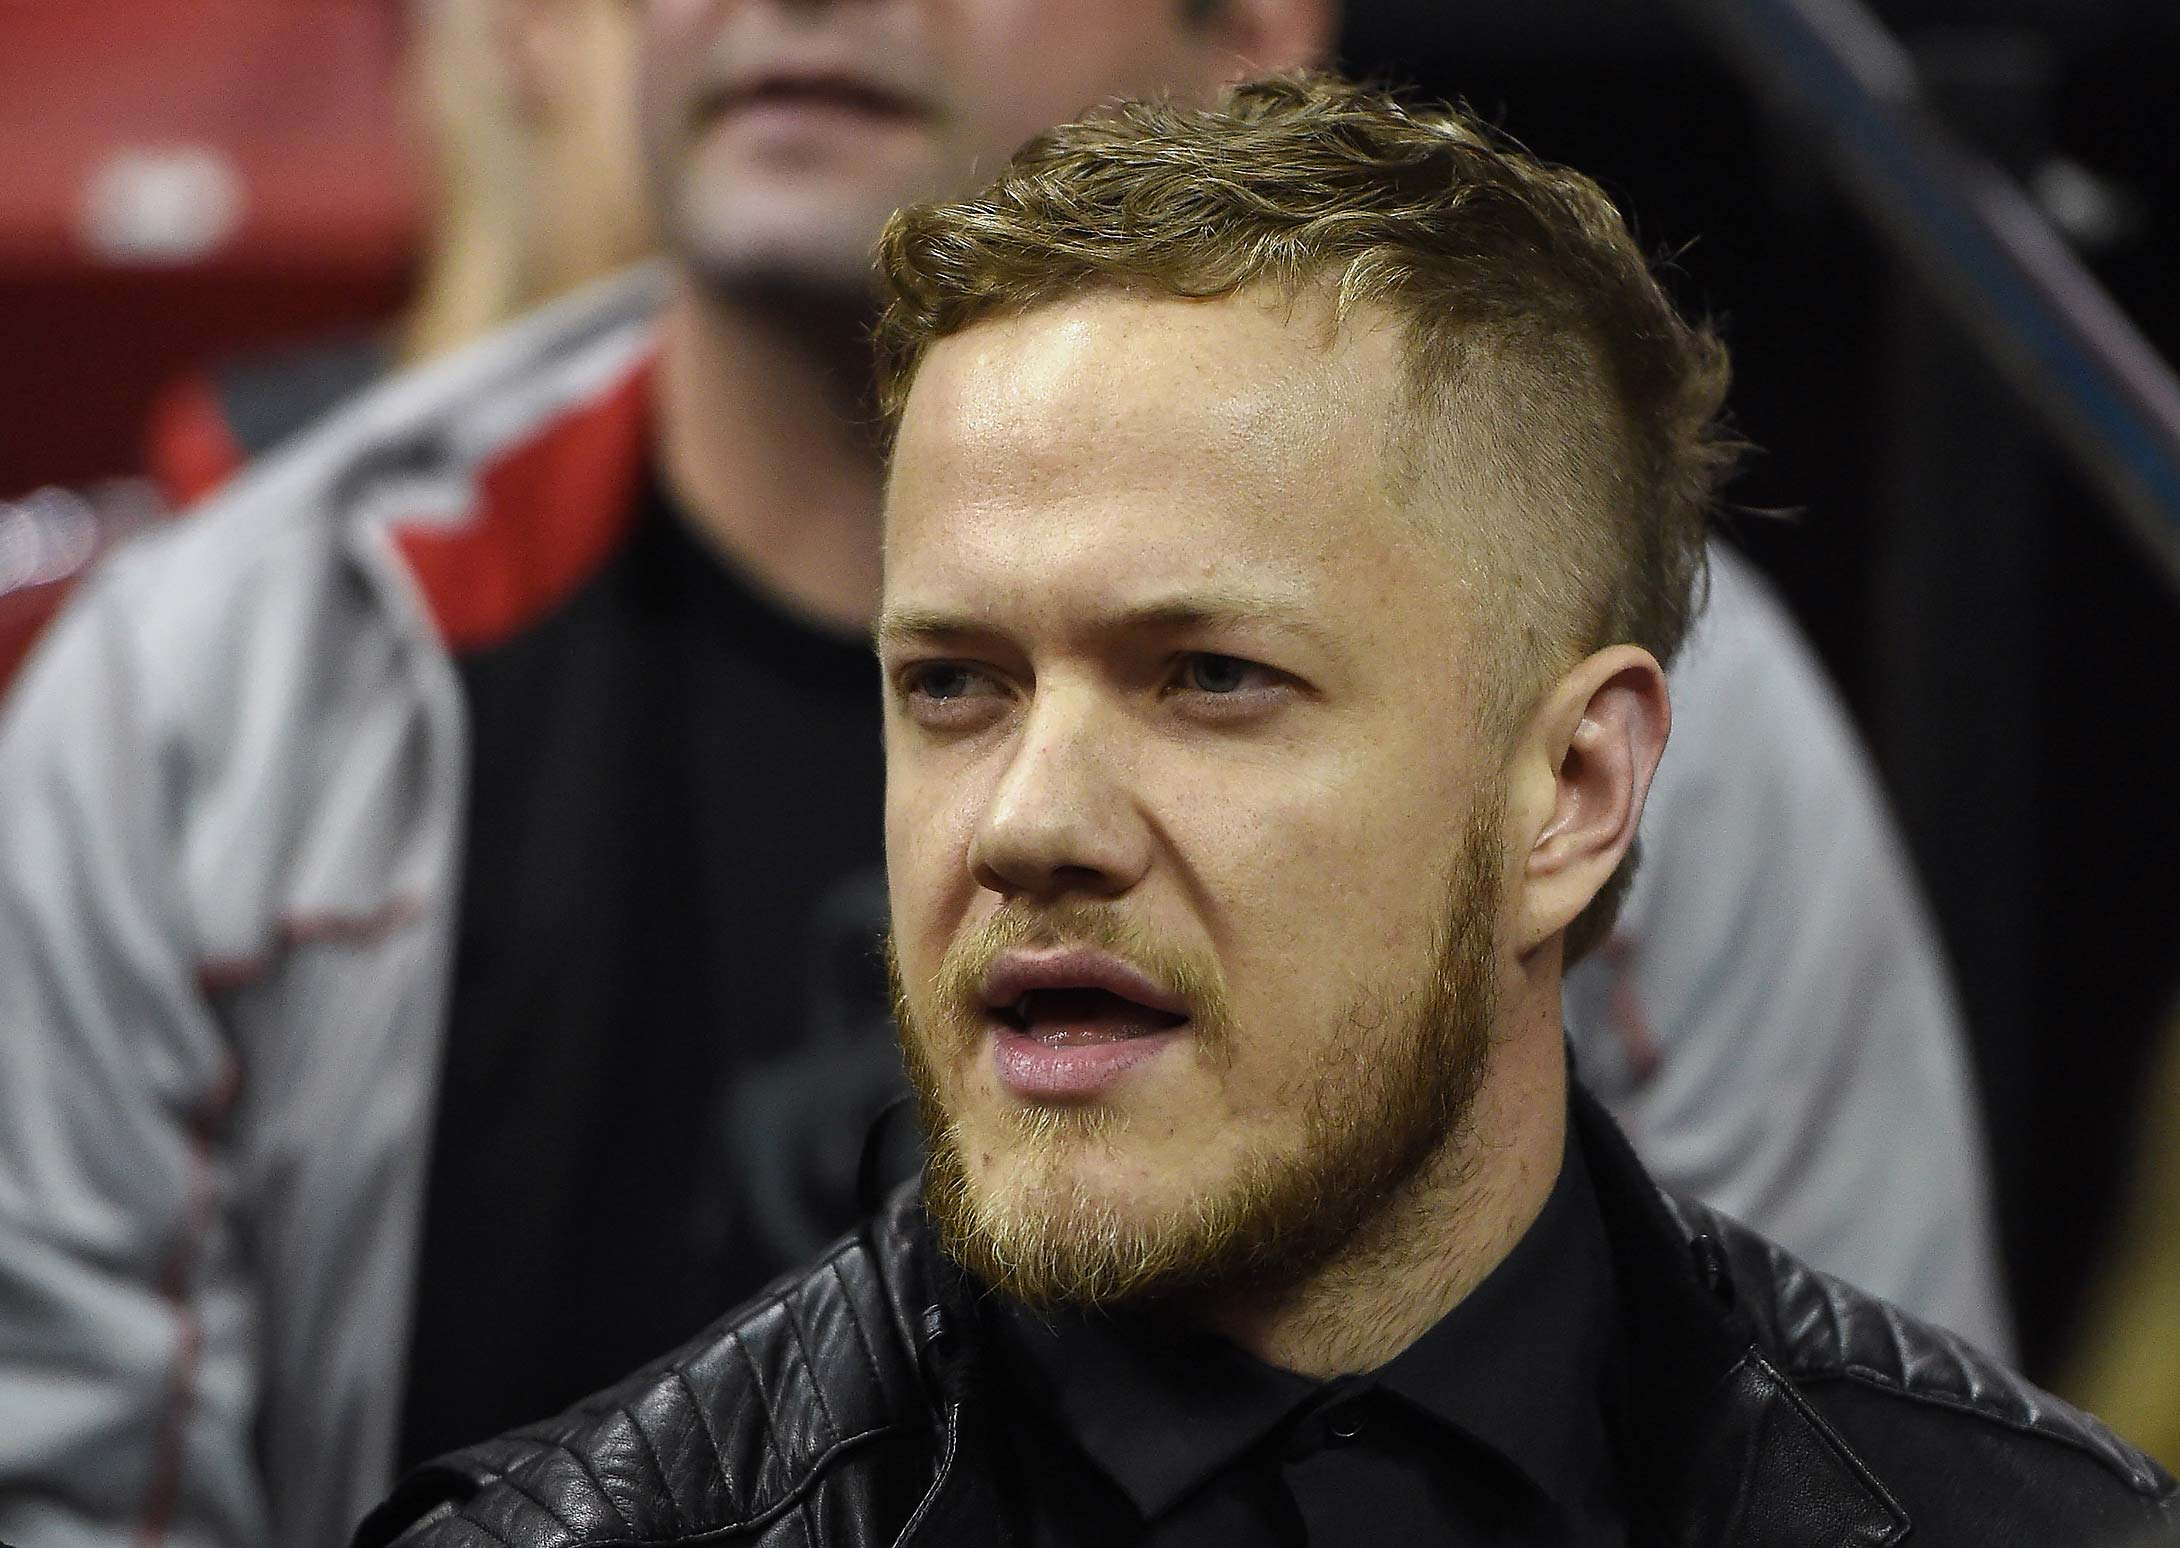 Singer/drummer Dan Reynolds of the band Imagine Dragons attends a 2014 game between the Morehead State Eagles and the UNLV Rebels at the Thomas & Mack Center in Las Vegas.